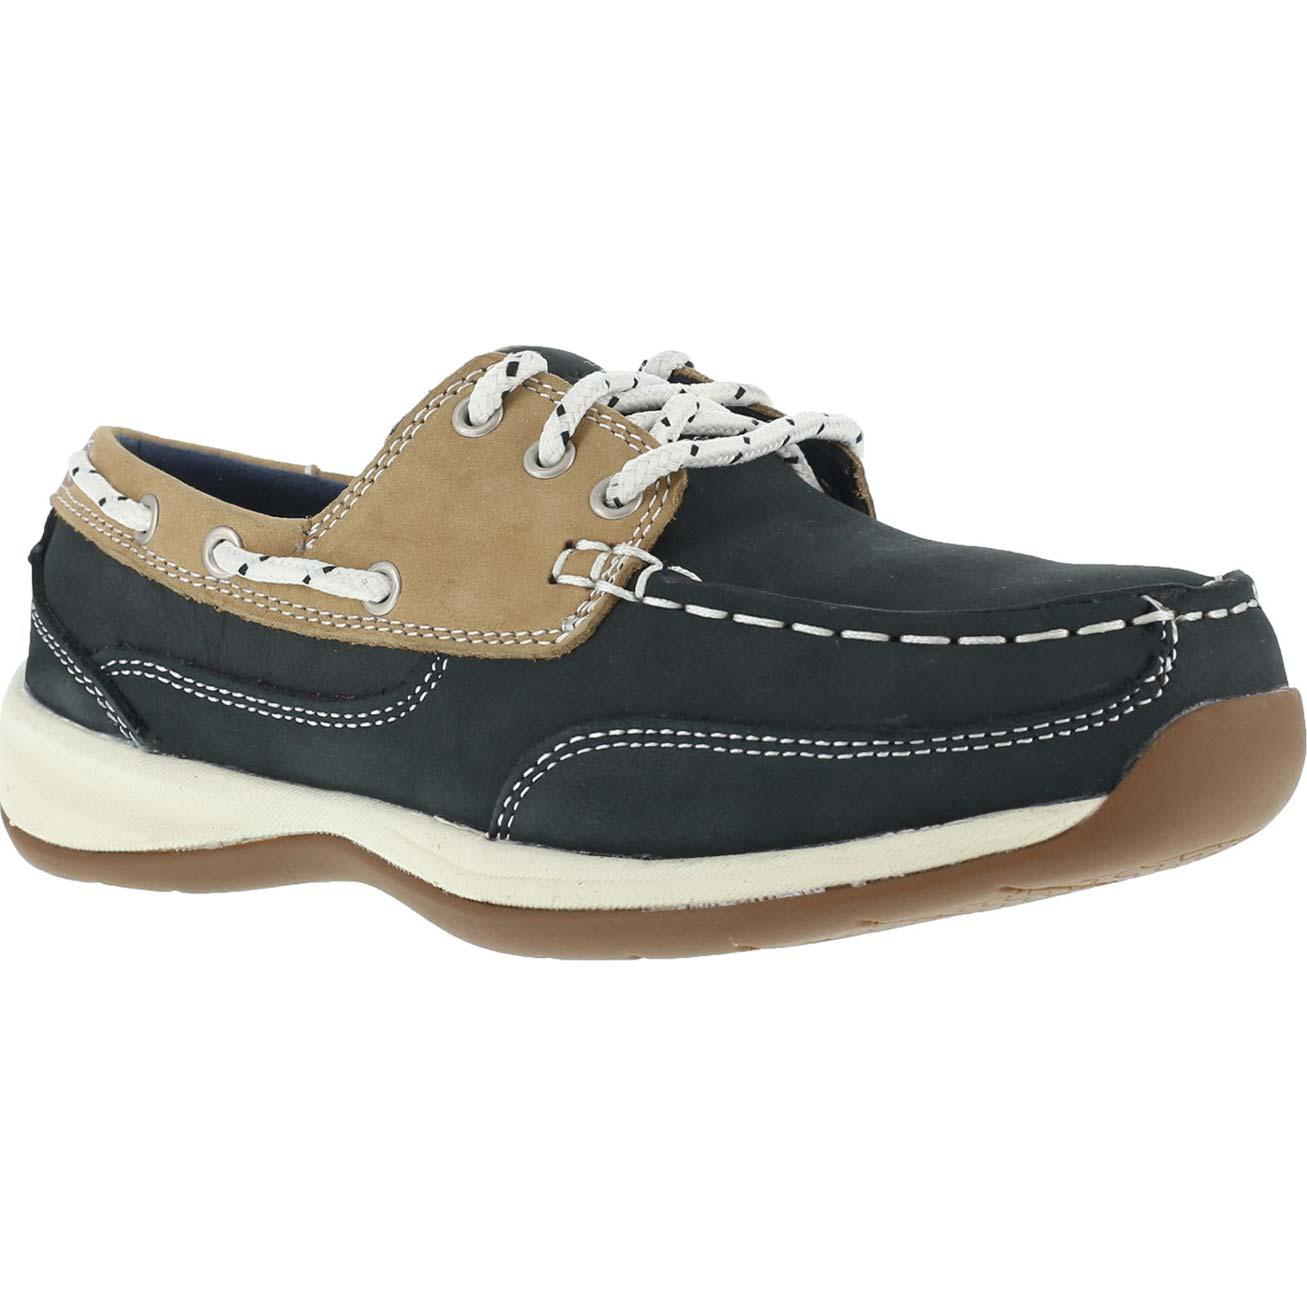 Rockport Womens Safety Shoes